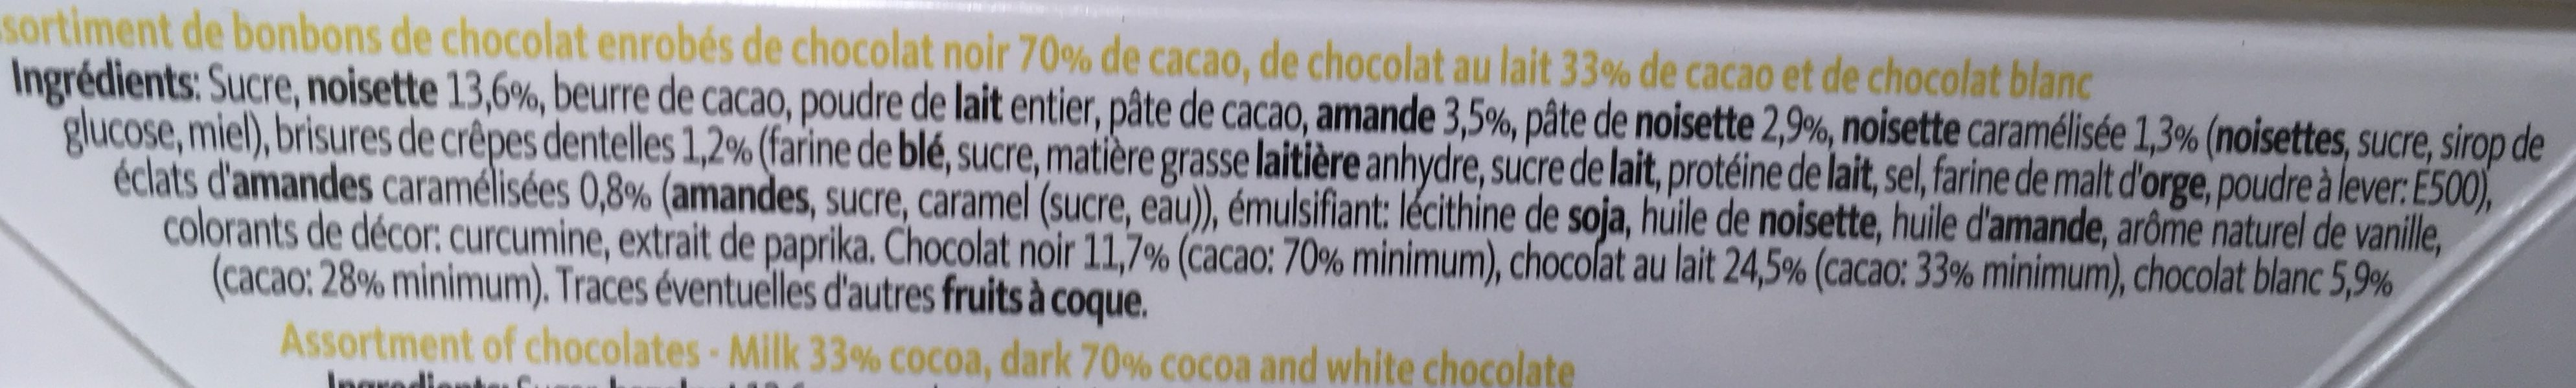 Collection pralines - Ingredients